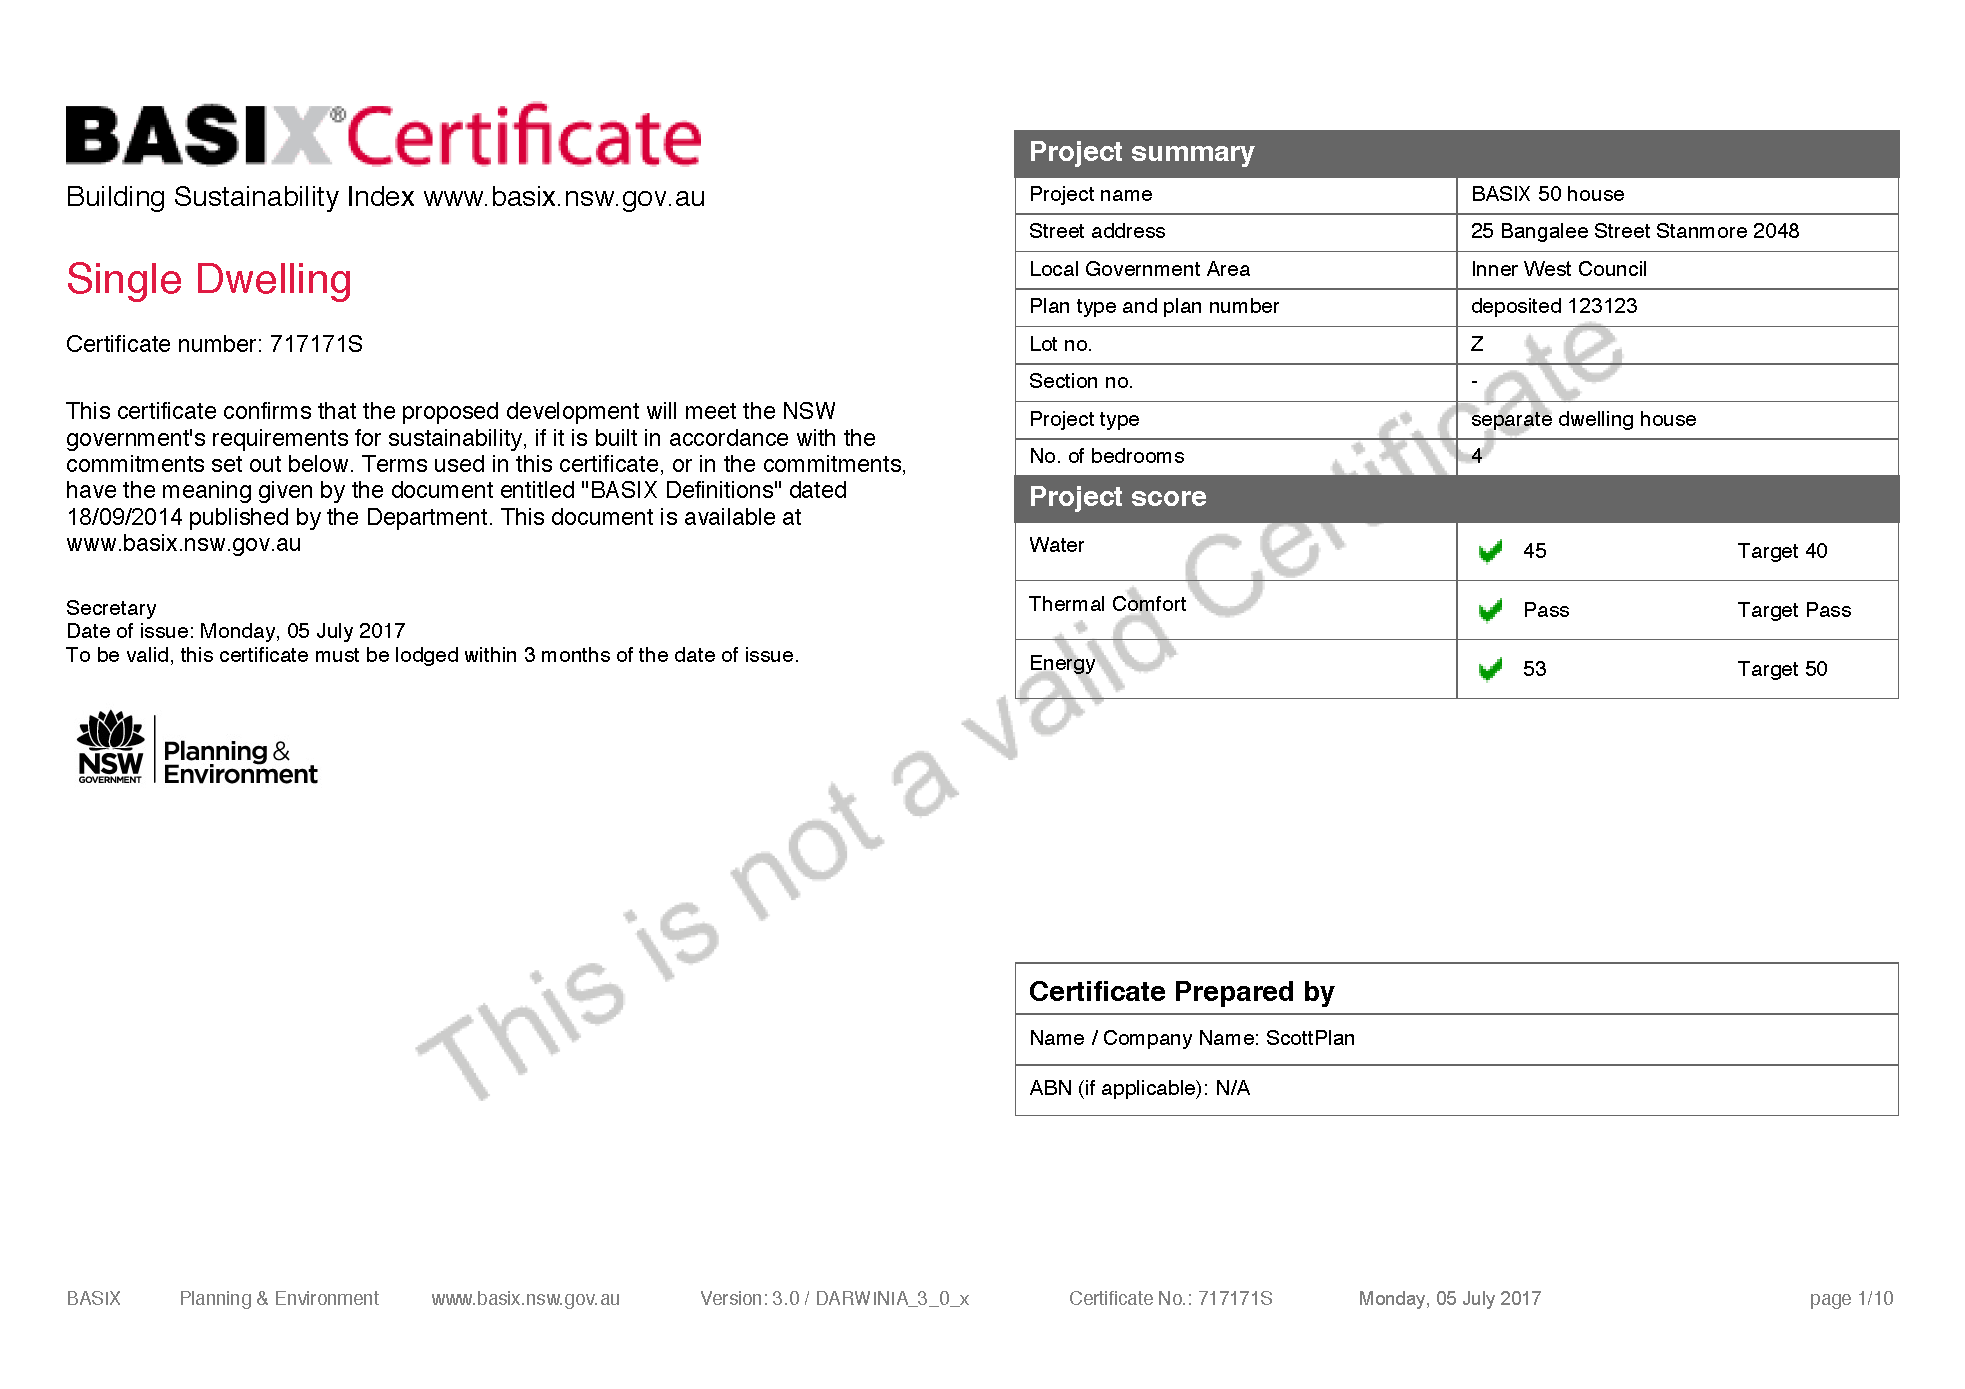 Basix certificates basix building sustainability index sample basix certificate single home development click on the image for a full sample certificate 10 page pdf doc xflitez Image collections